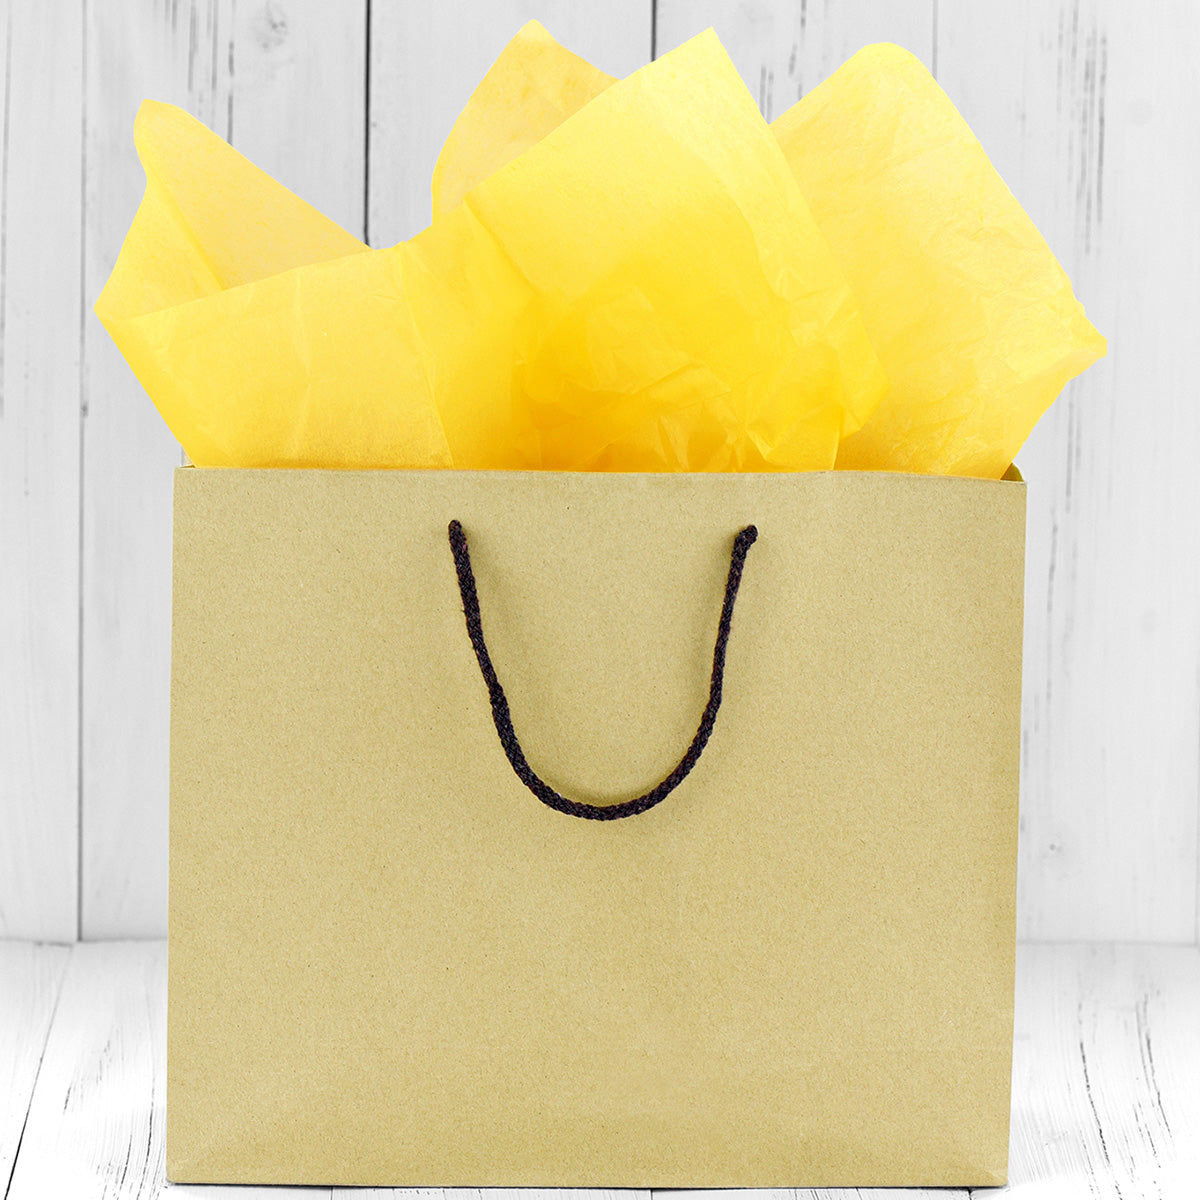 50 Sheets Dark Yellow Wrapping Tissue Paper